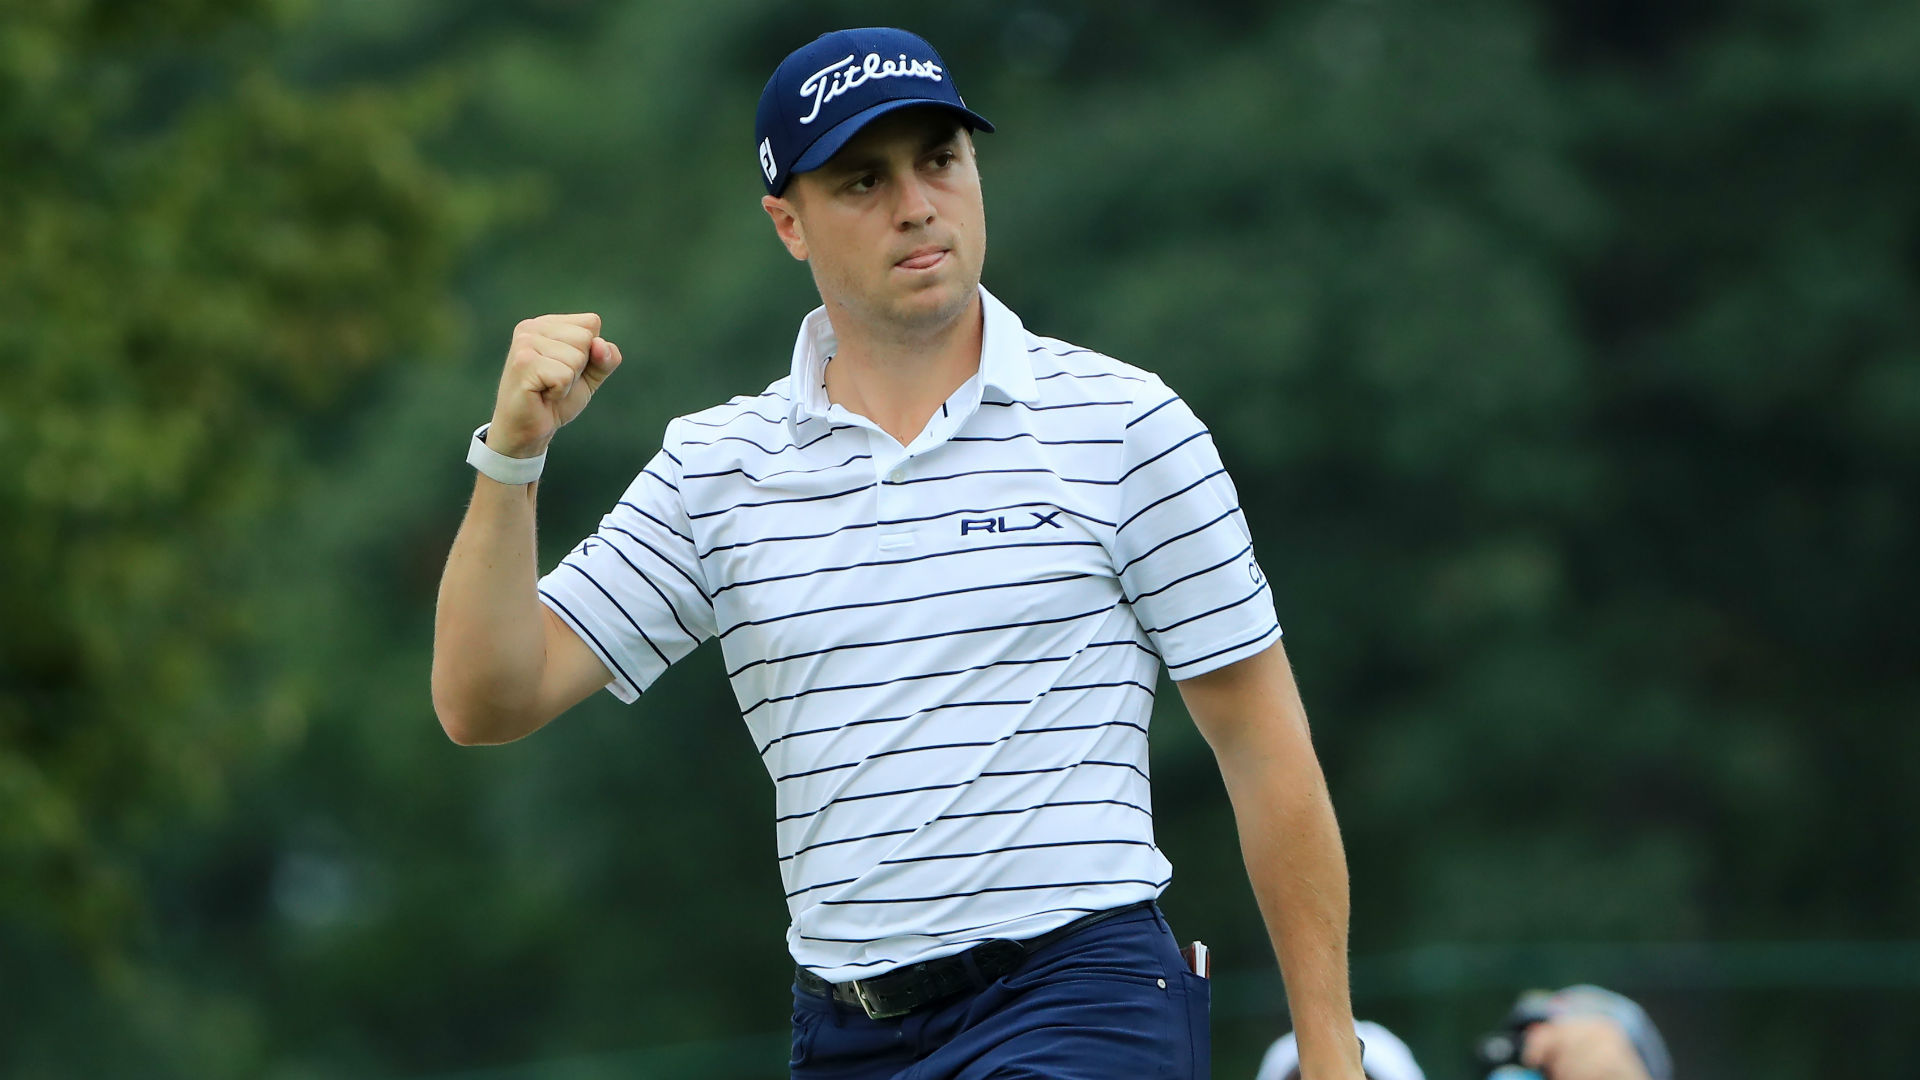 Thomas shatters course record for BMW Championship lead